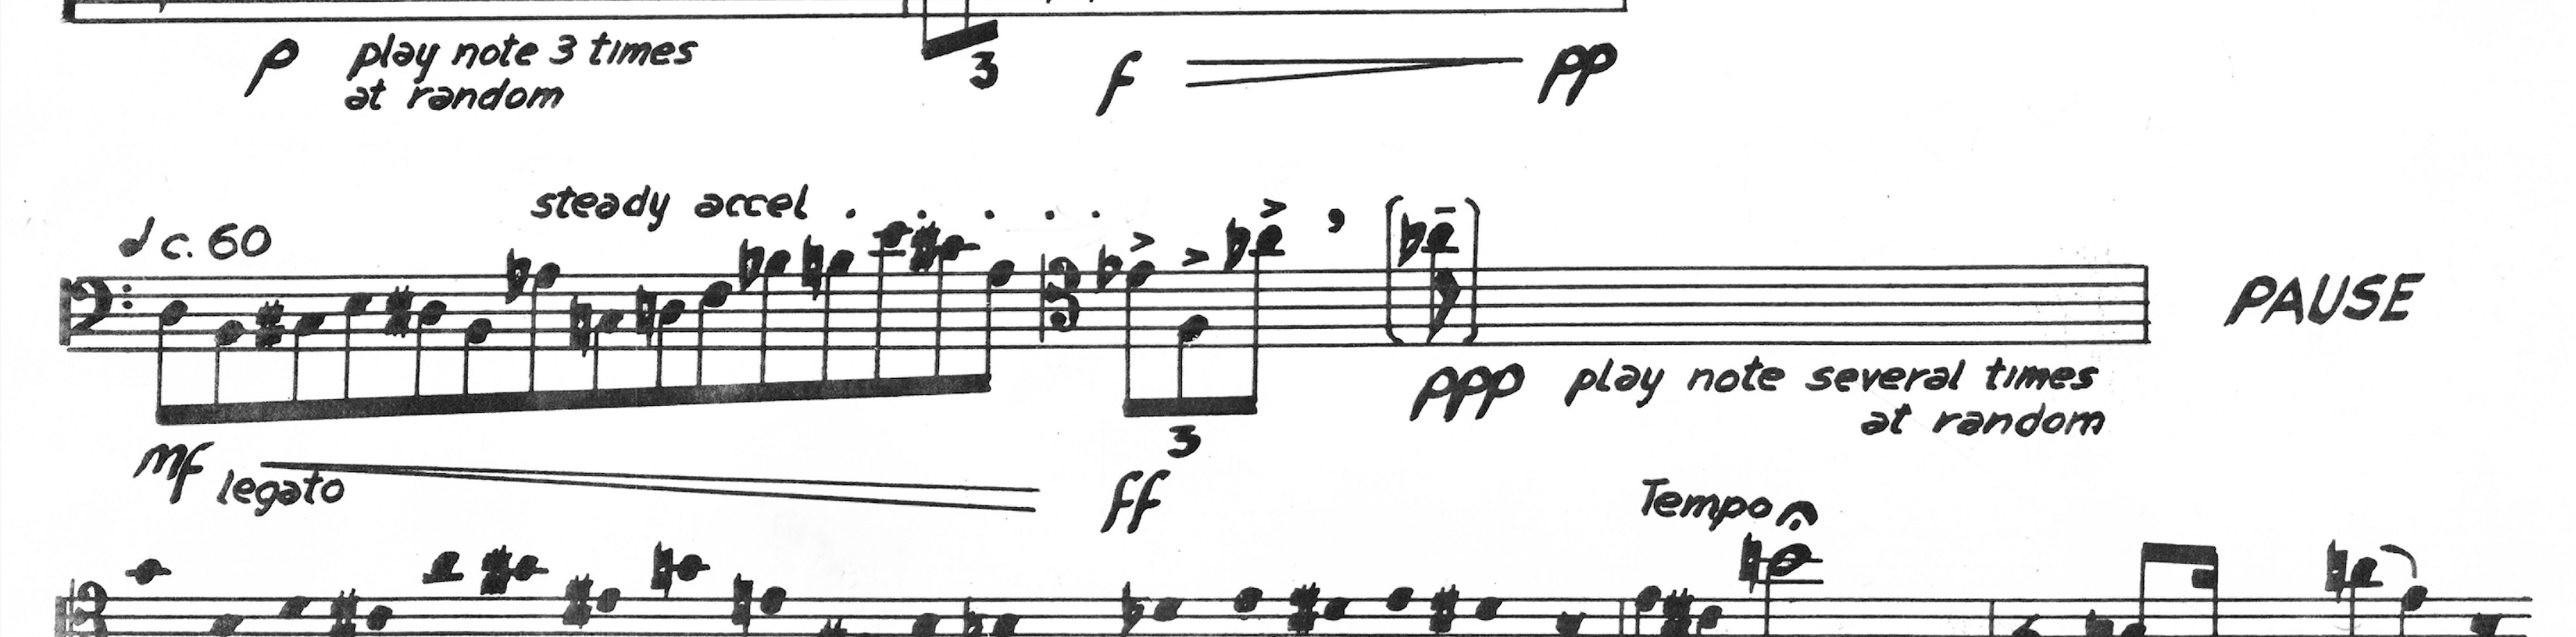 Excerpt from Sonata for Solo Trombone by Barney Childs